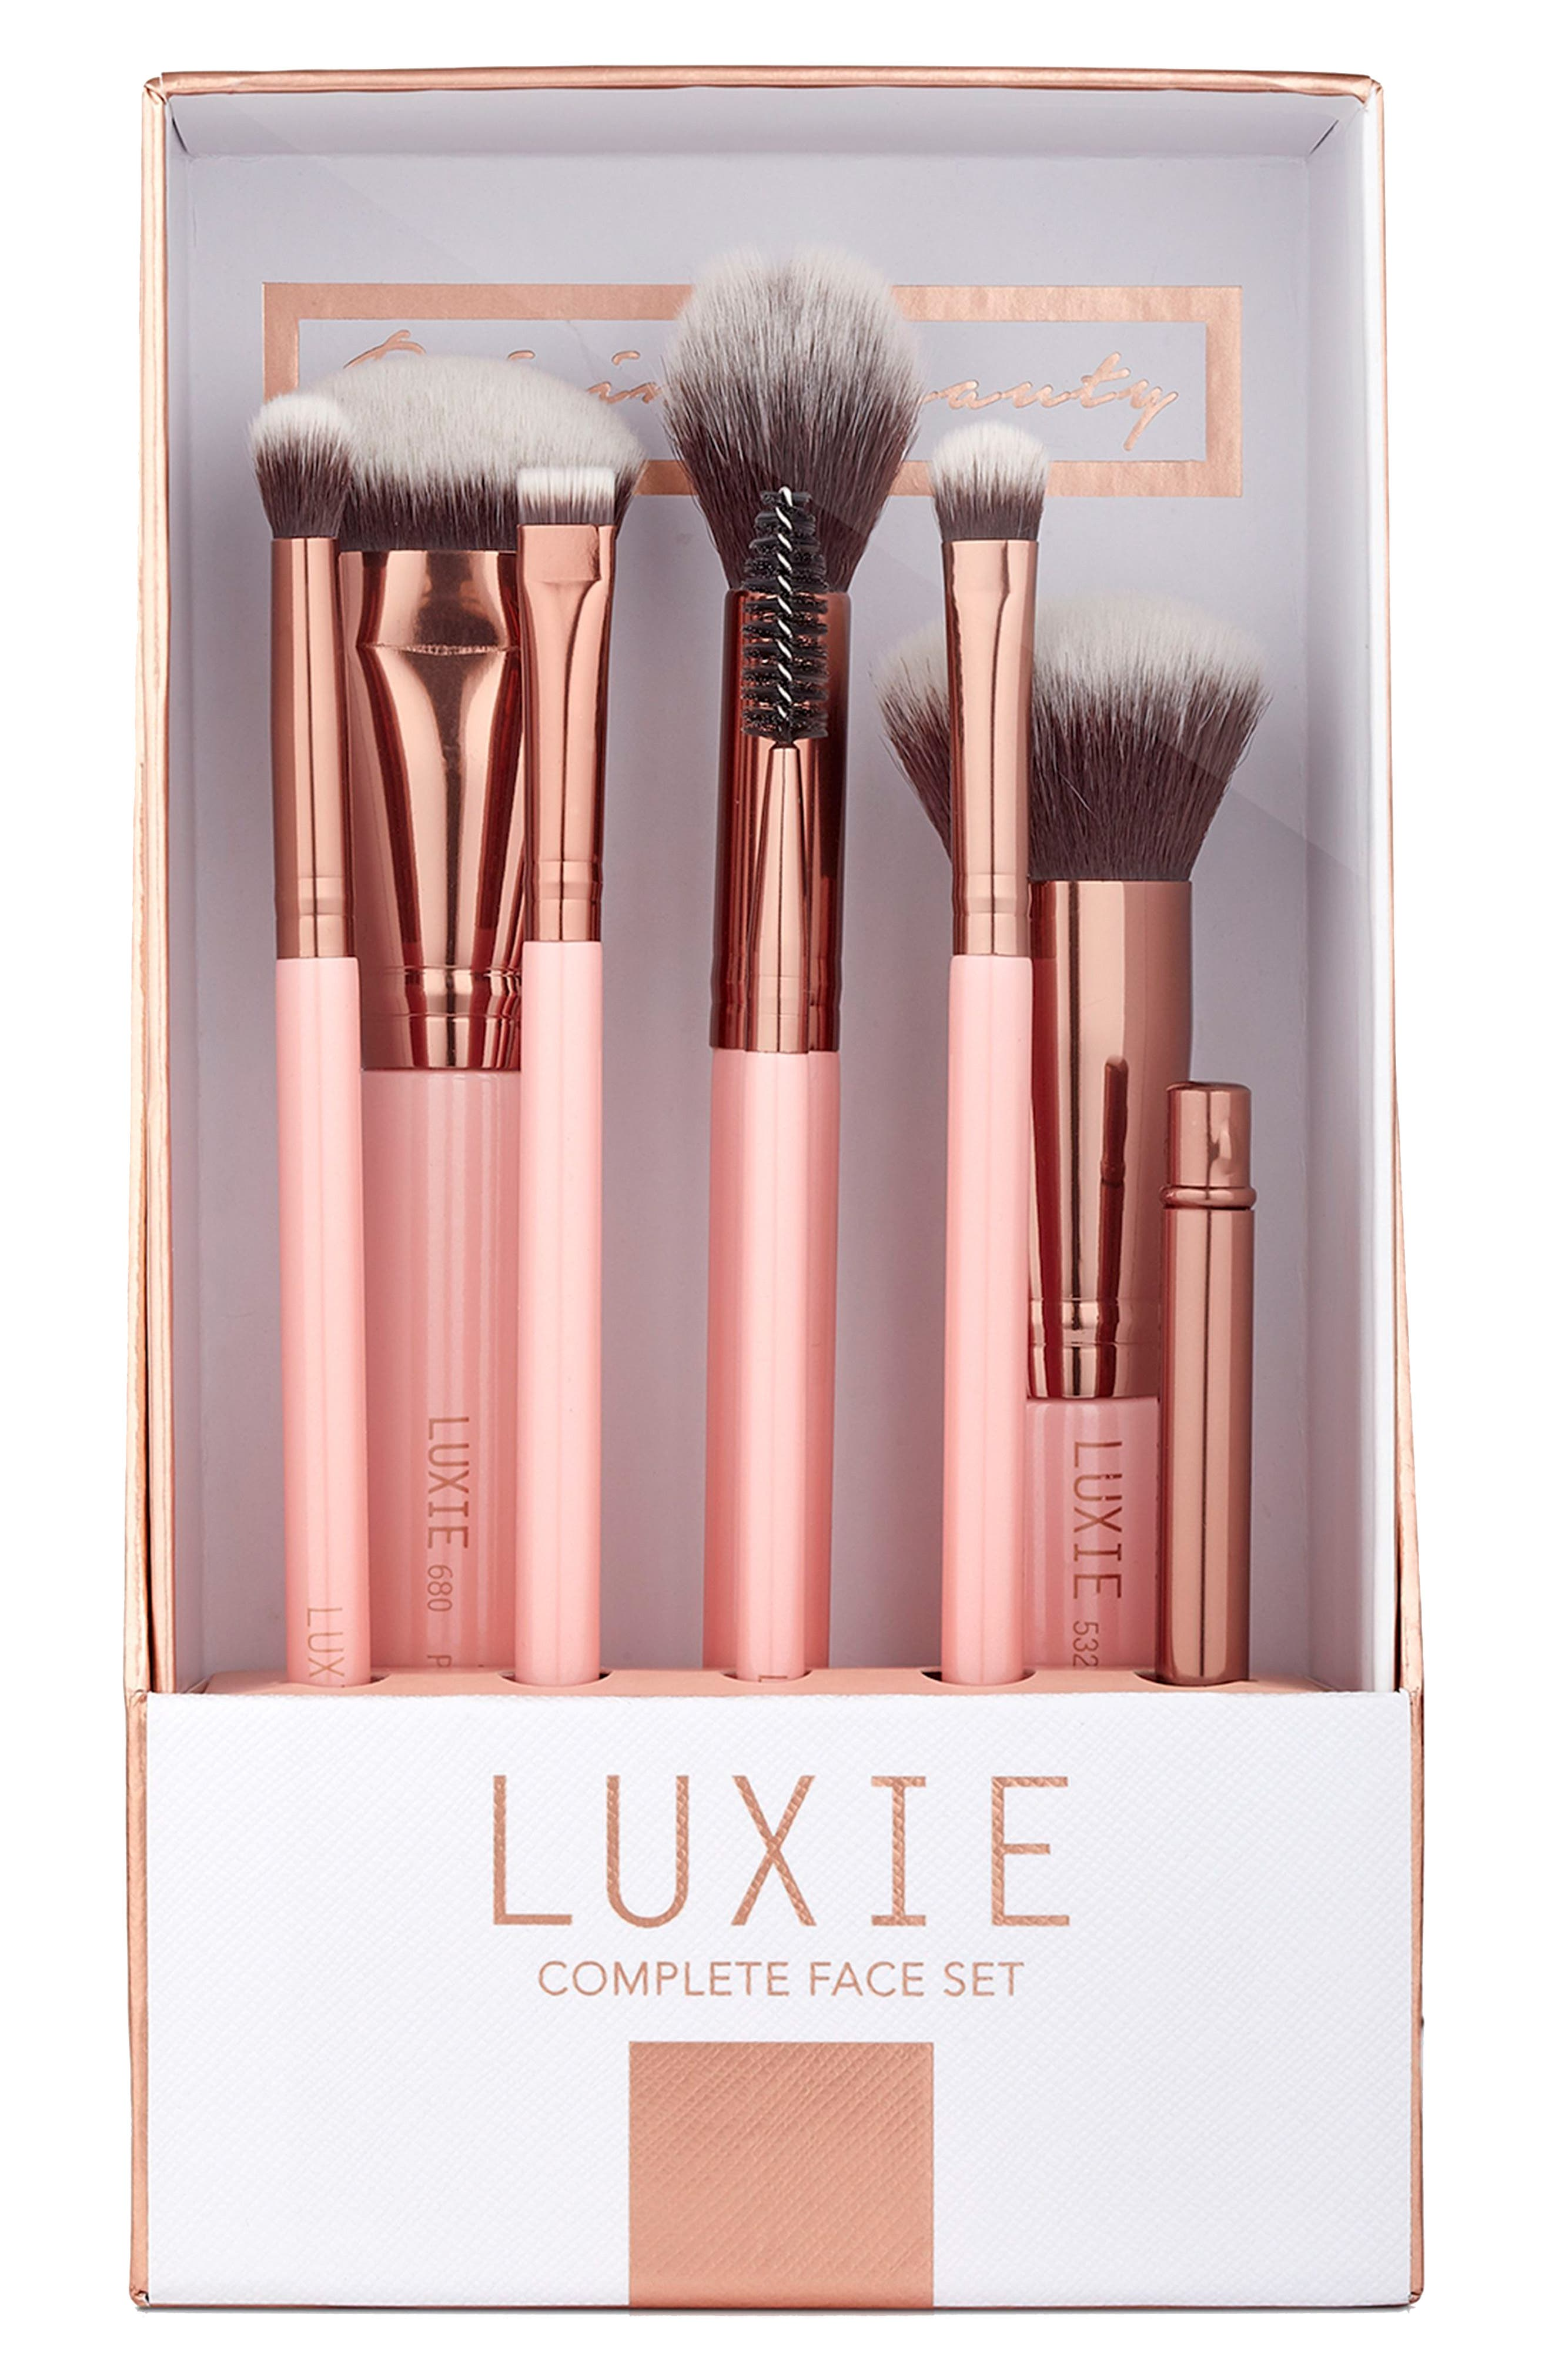 Luxie Rose Gold Complete Face Brush Set ($124 Value)